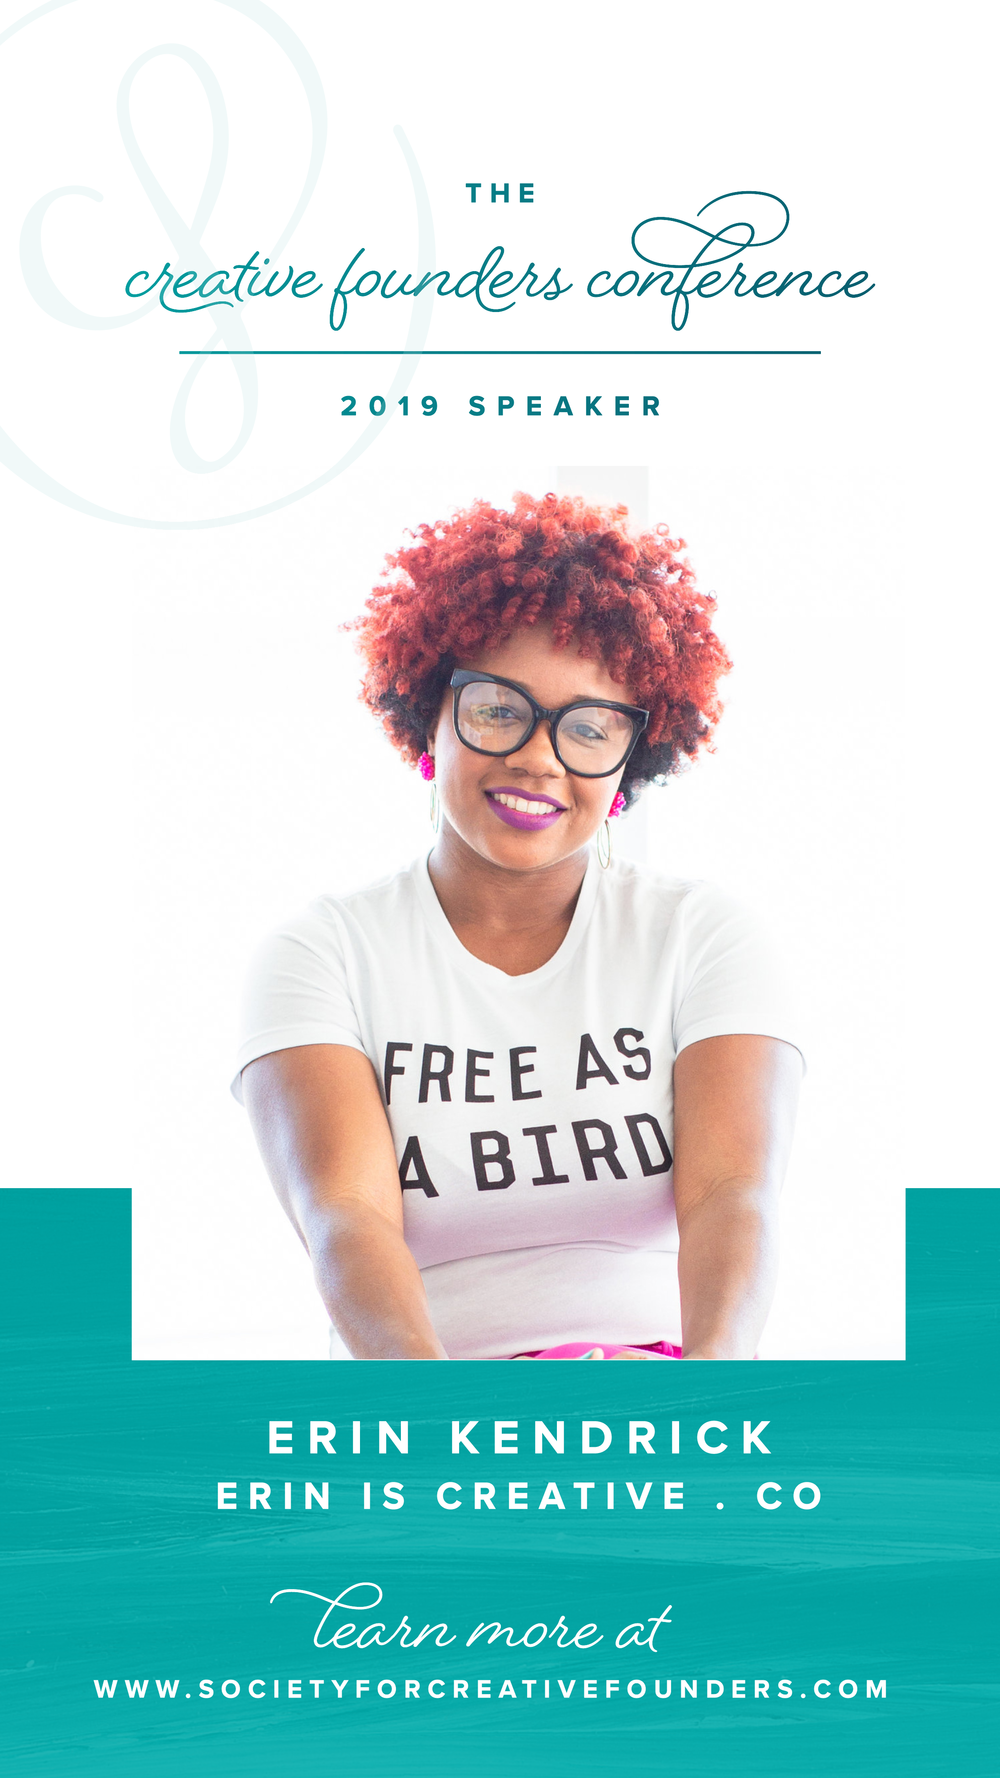 Erin Kendrick of Erin is Creative.Co - Fall 2019 Creative Founders Conference Speaker